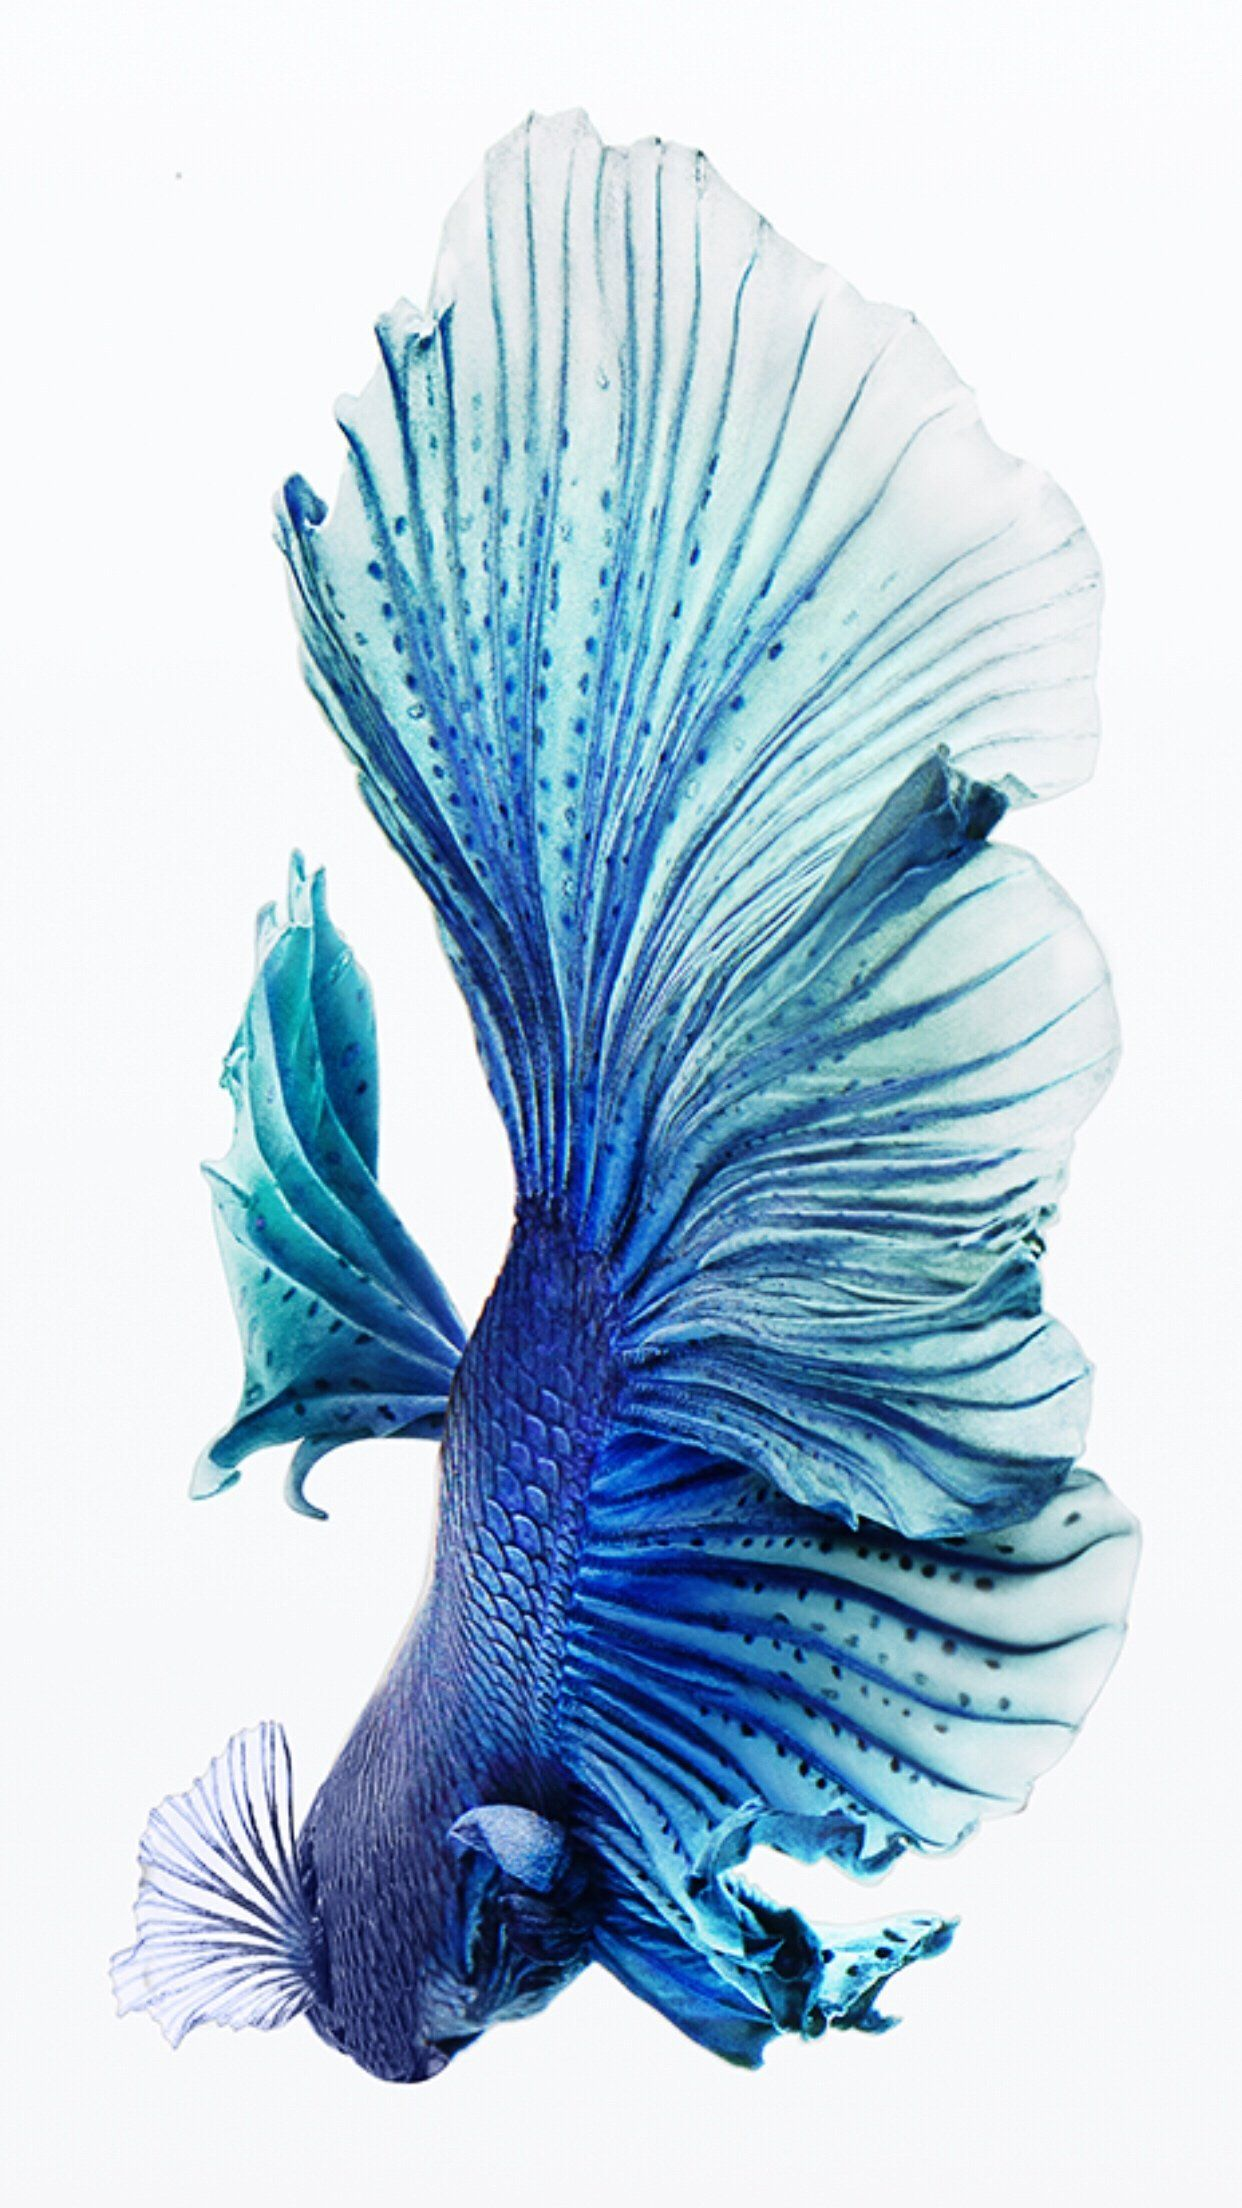 Blue Halfmoon Male Betta Fondo de pantalla de peces